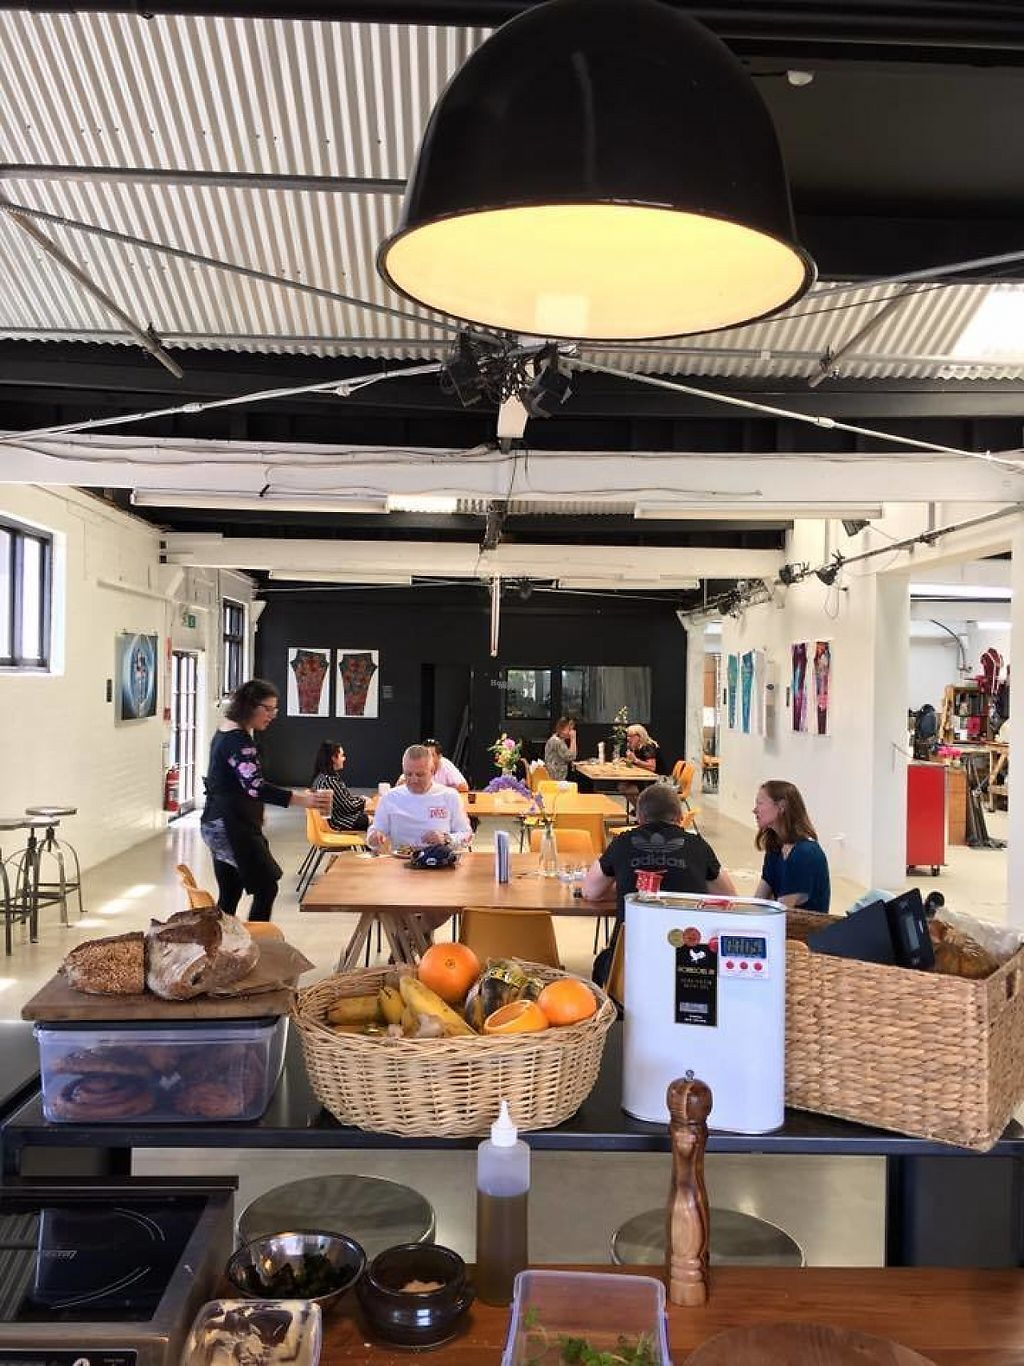 """Photo of The Exchange Cafe  by <a href=""""/members/profile/community5"""">community5</a> <br/>The Exchange Cafe <br/> March 1, 2017  - <a href='/contact/abuse/image/87958/231651'>Report</a>"""